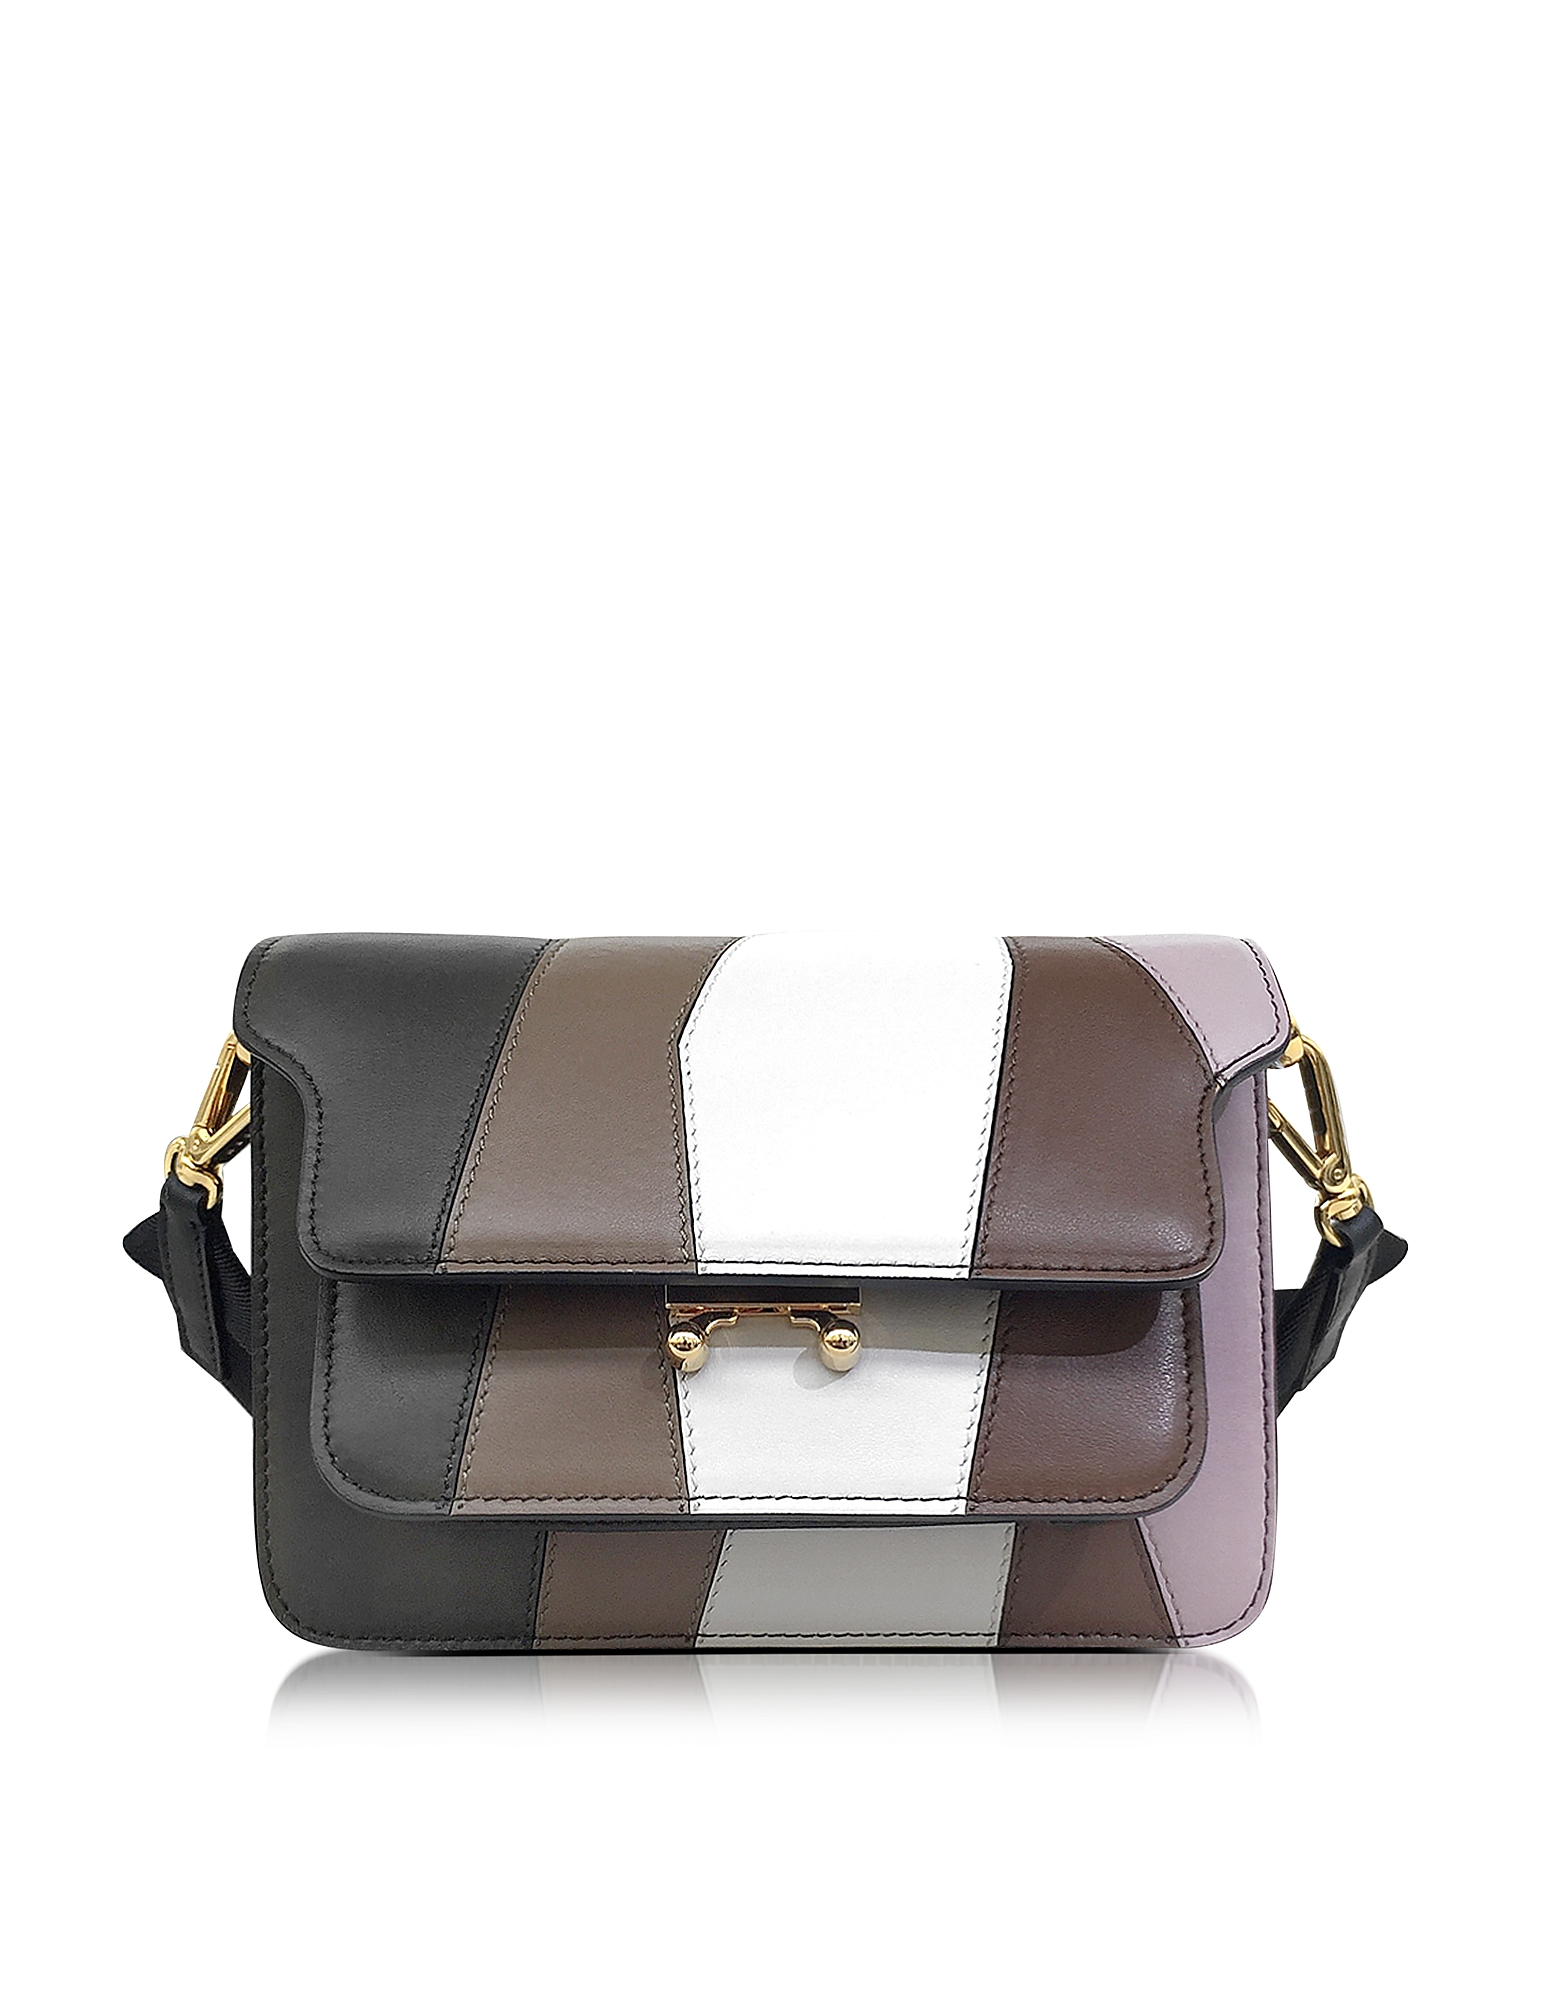 Marni Trunk Bag - ��������� ����� �� ��������� � ���������� ����